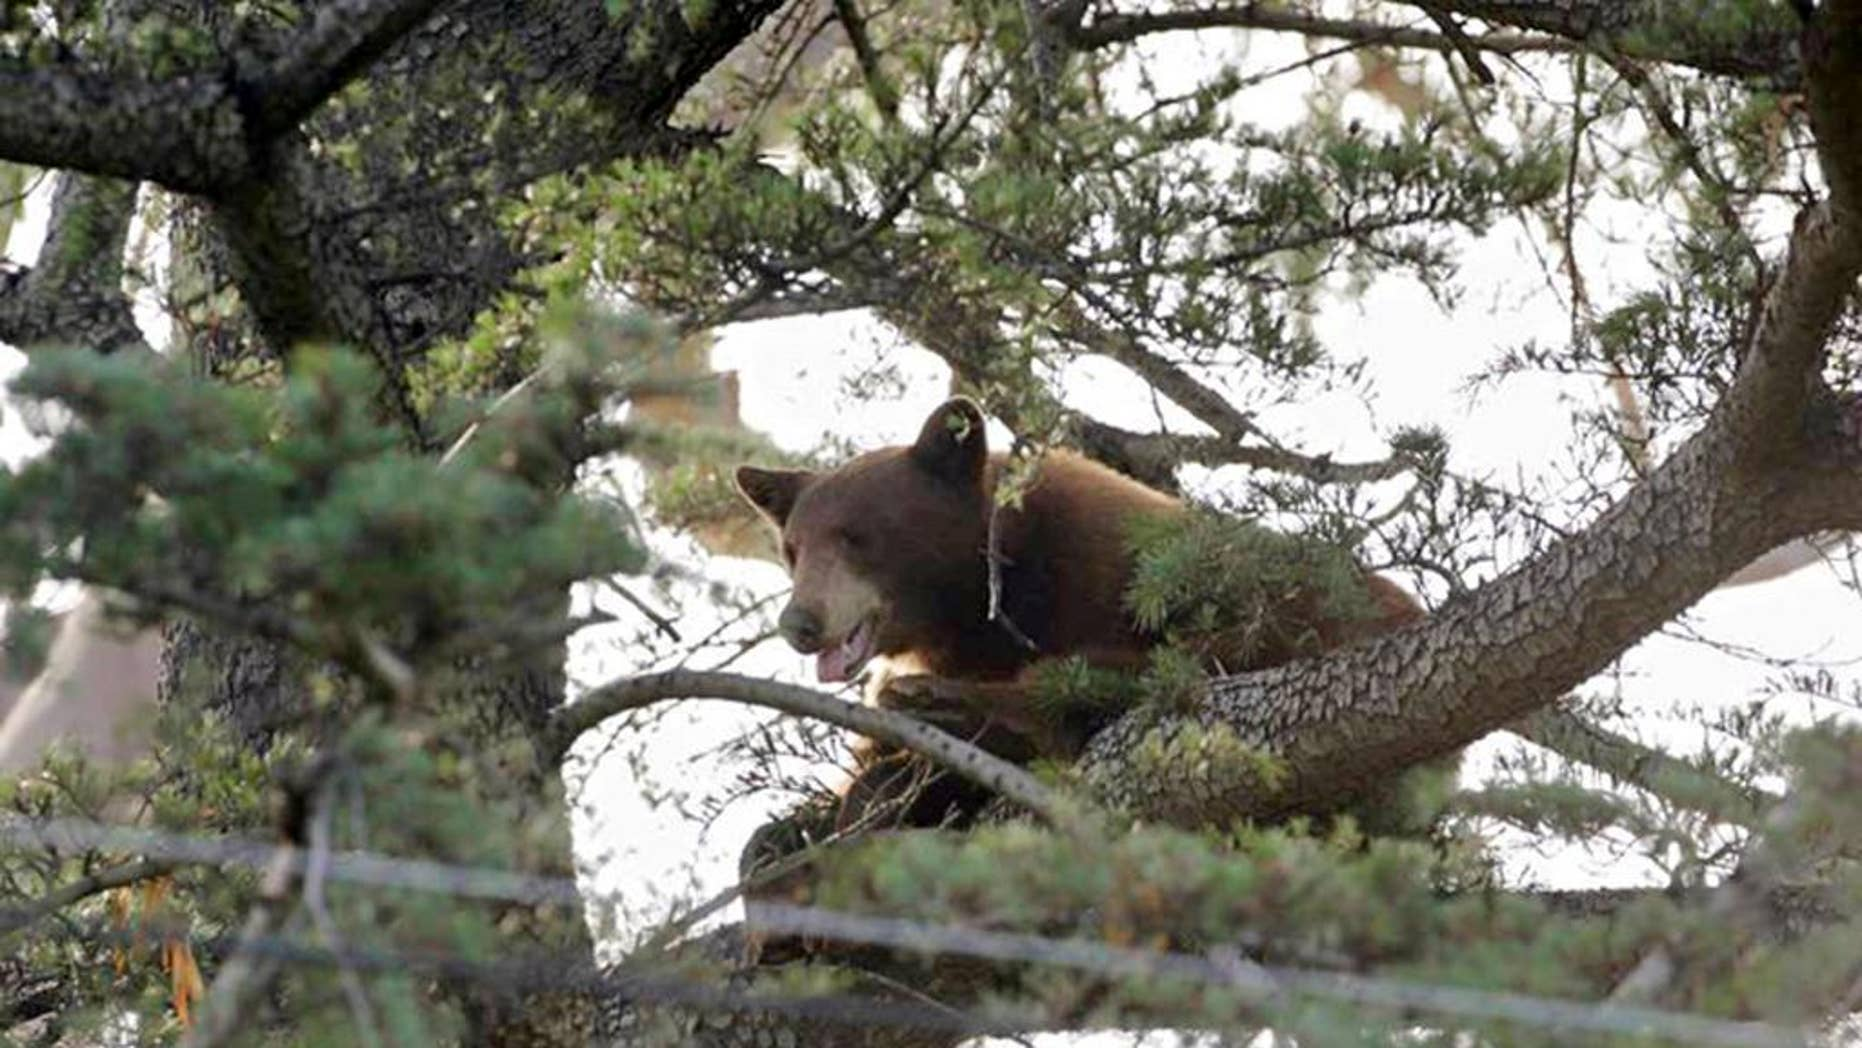 This photo provided by the Rancho Cucamonga Police Department shows a black bear in a tree in Rancho Cucamonga, Calif. on Wednesday, May 18, 2016. Wildlife authorities later tranquilized and captured the bear in Rancho Cucamonga at the foot of the San Gabriel Mountains 40 miles east of Los Angeles. (Rancho Cucamonga Police Department via AP)